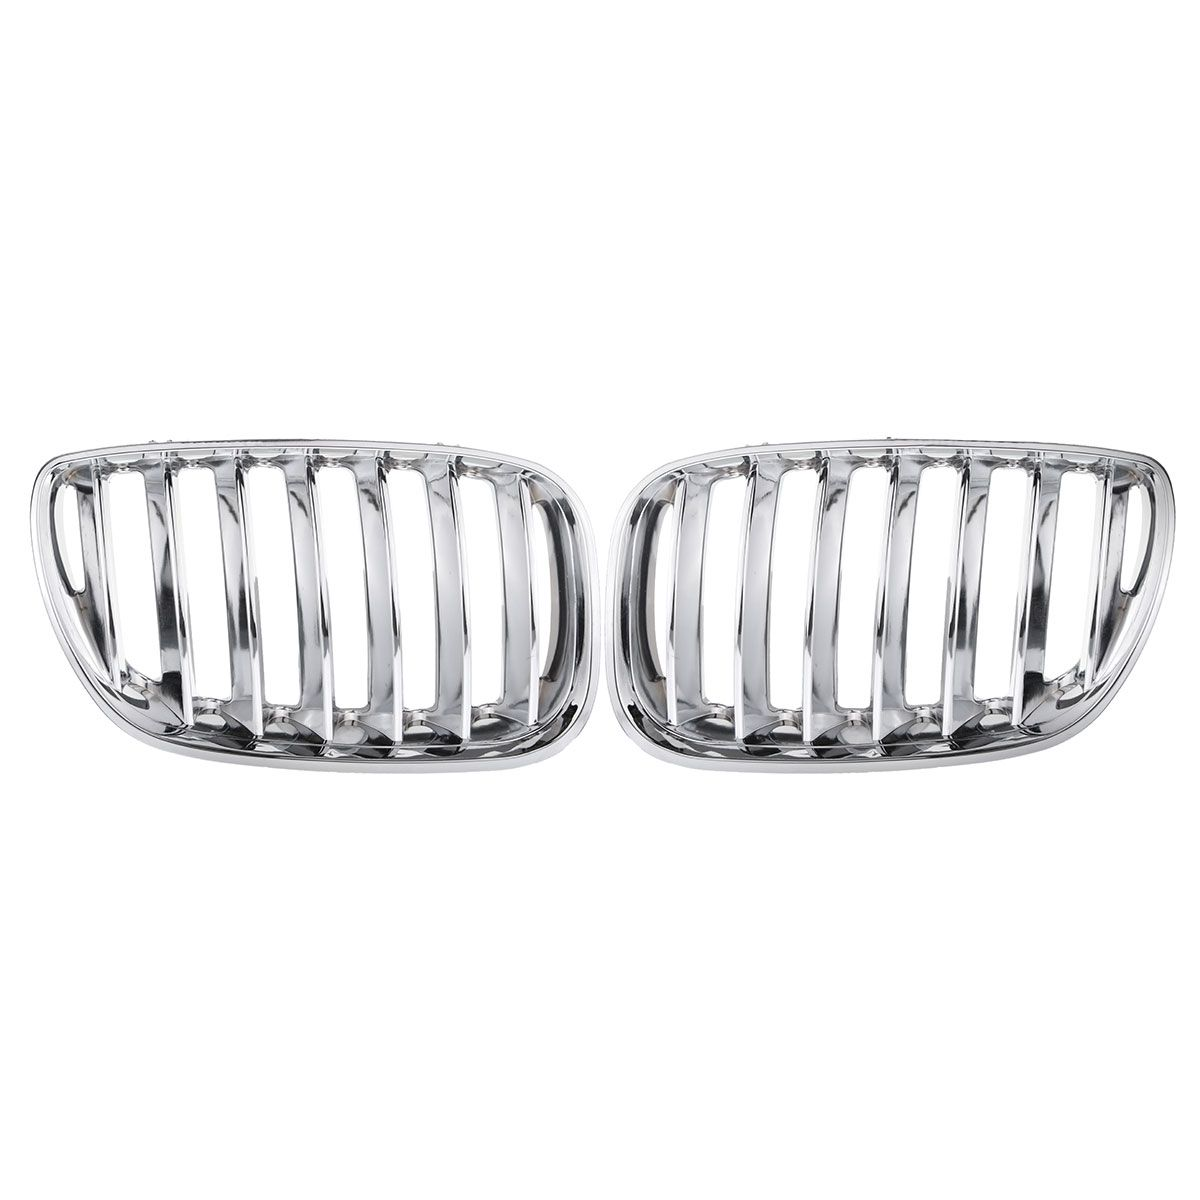 1 Pair Chrome Front Hood Kidney Sport Grills Grilles Fits for BMW X5 E53 2004 2005 2006